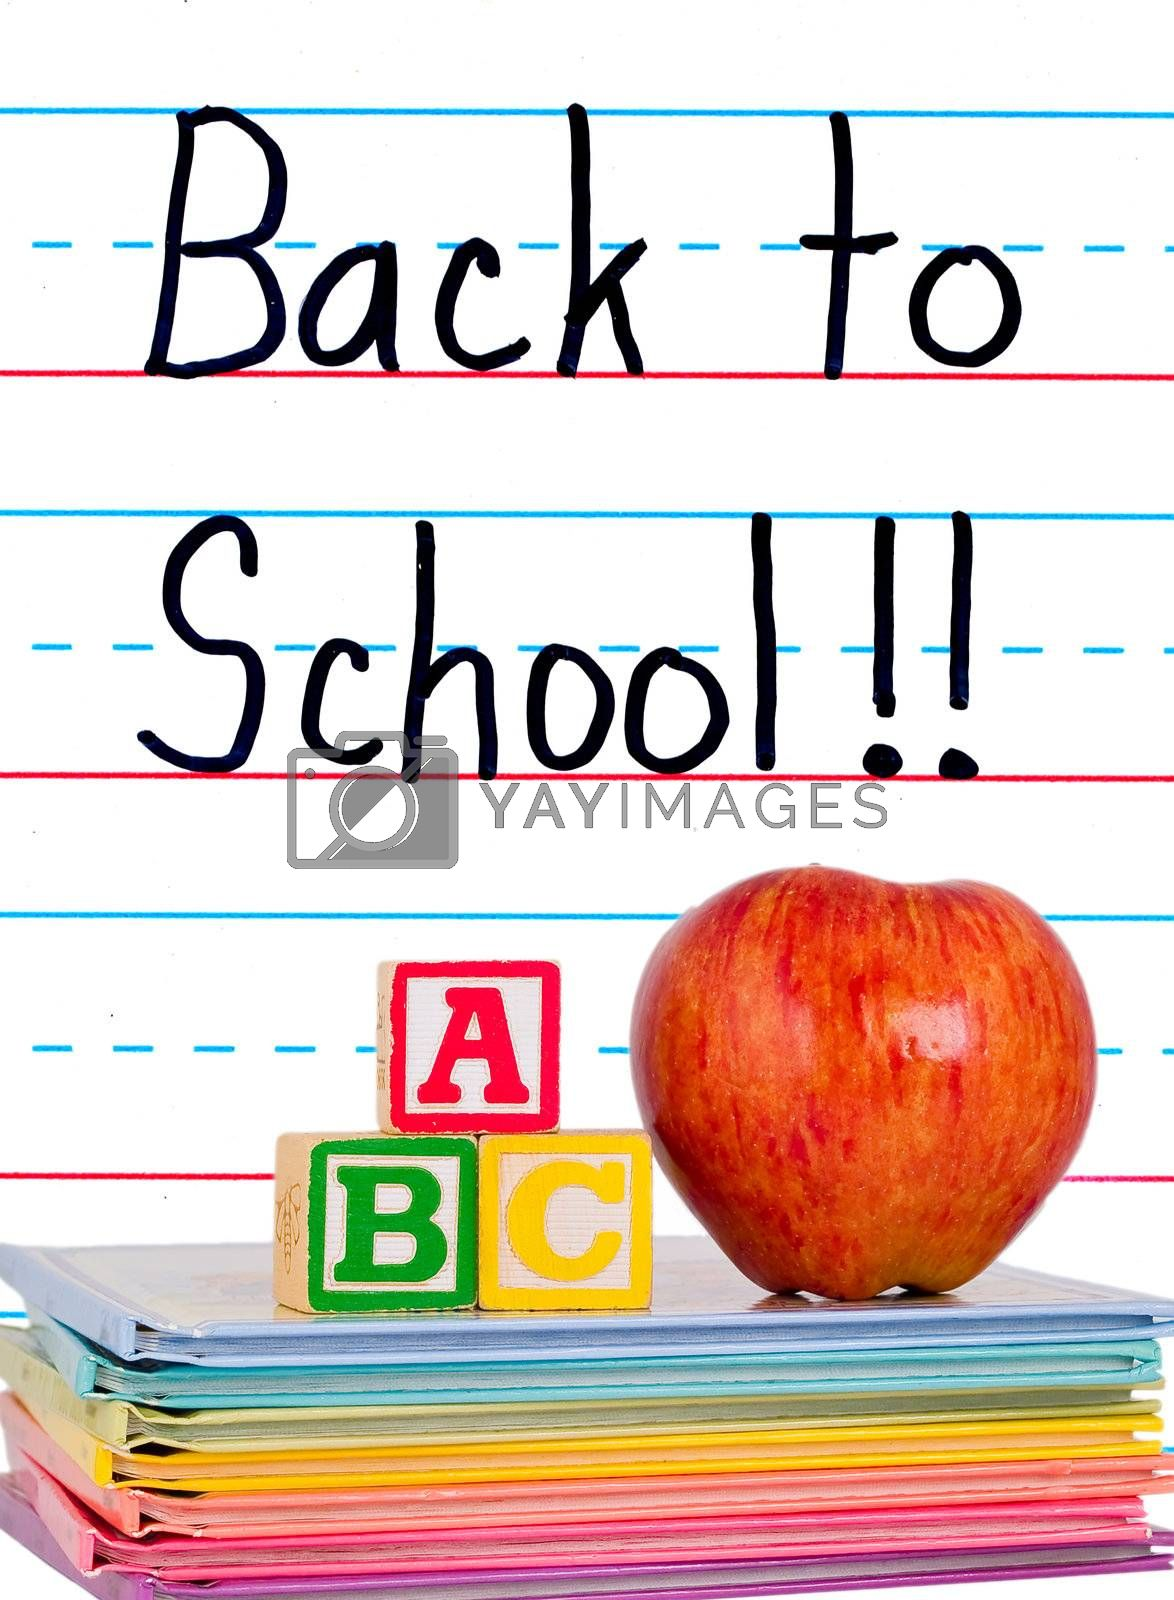 Back to School Written on a Lined Dry Erase Board with Books